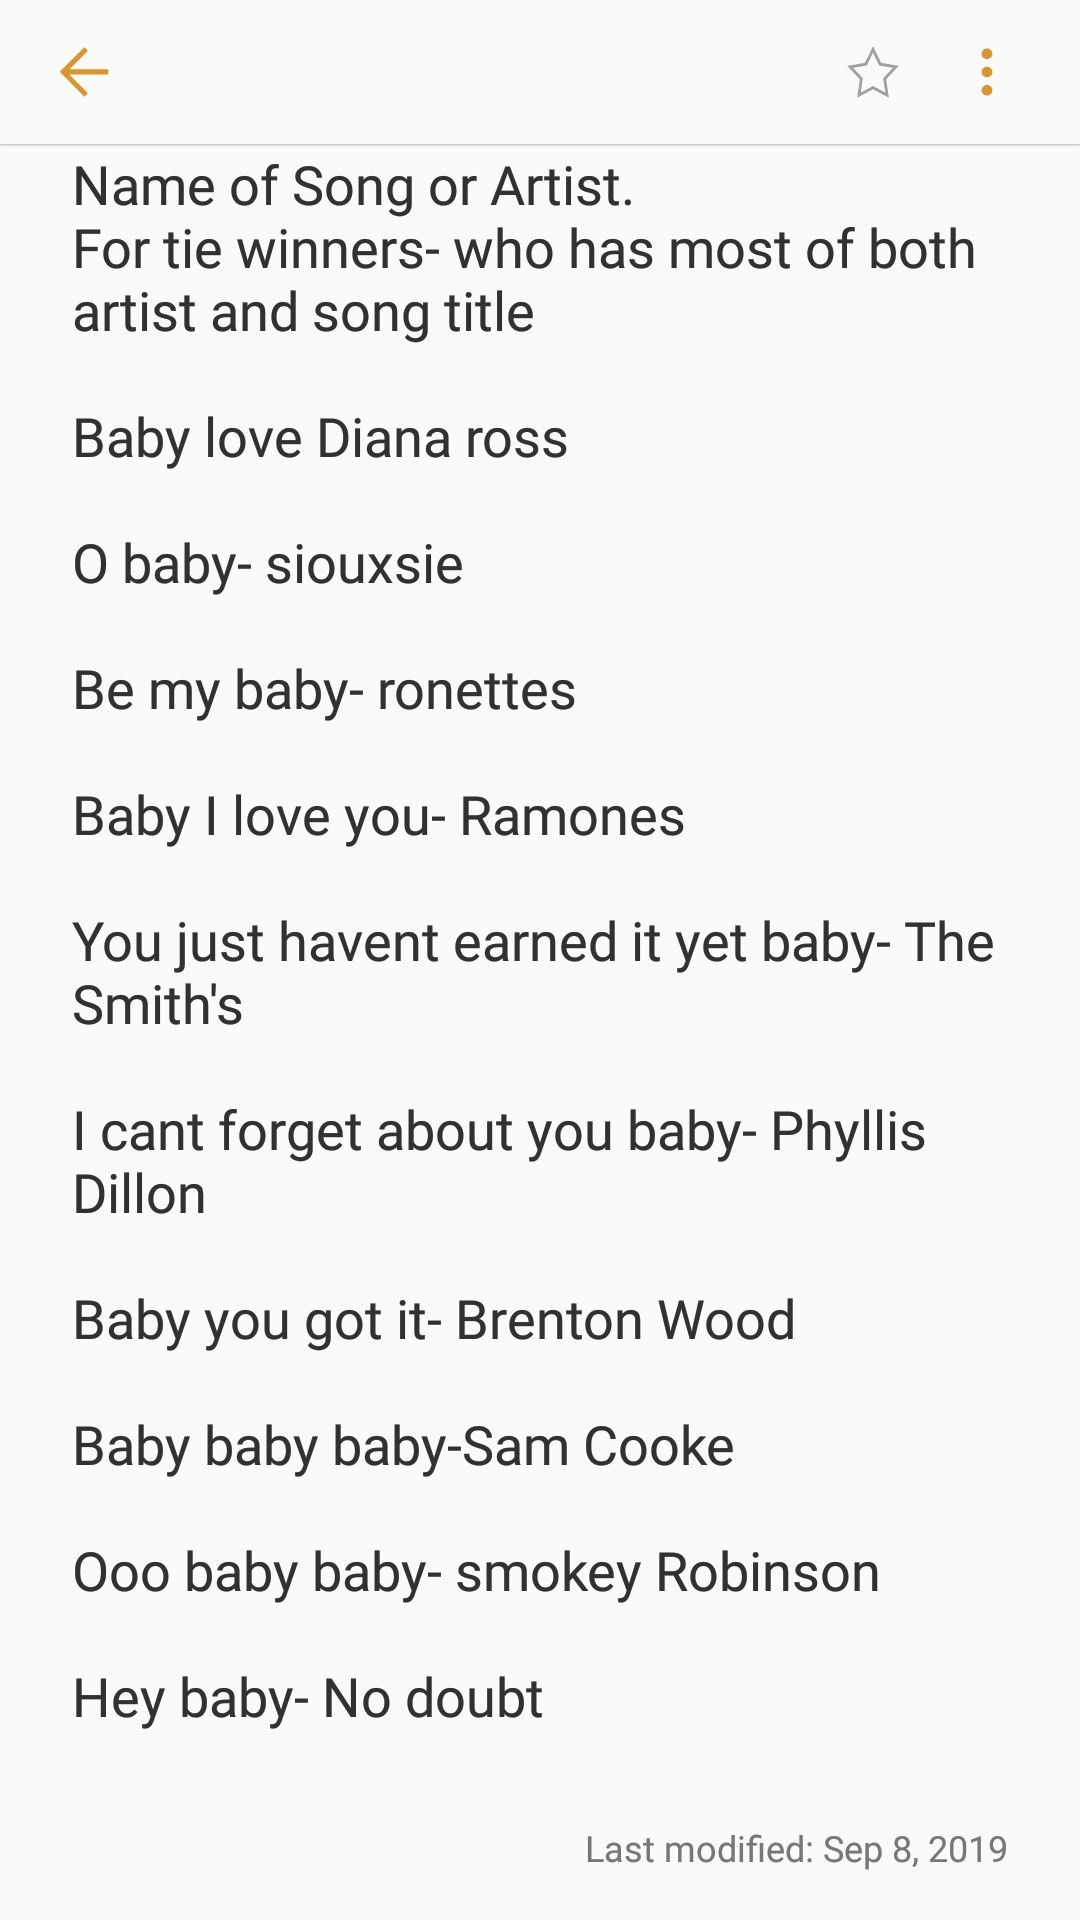 Super Fun Babyshower Game Play A Bit Of The Song For Guests To Guess The Artist And Or Song Title Think Name That Tune Name That Tune Songs Names